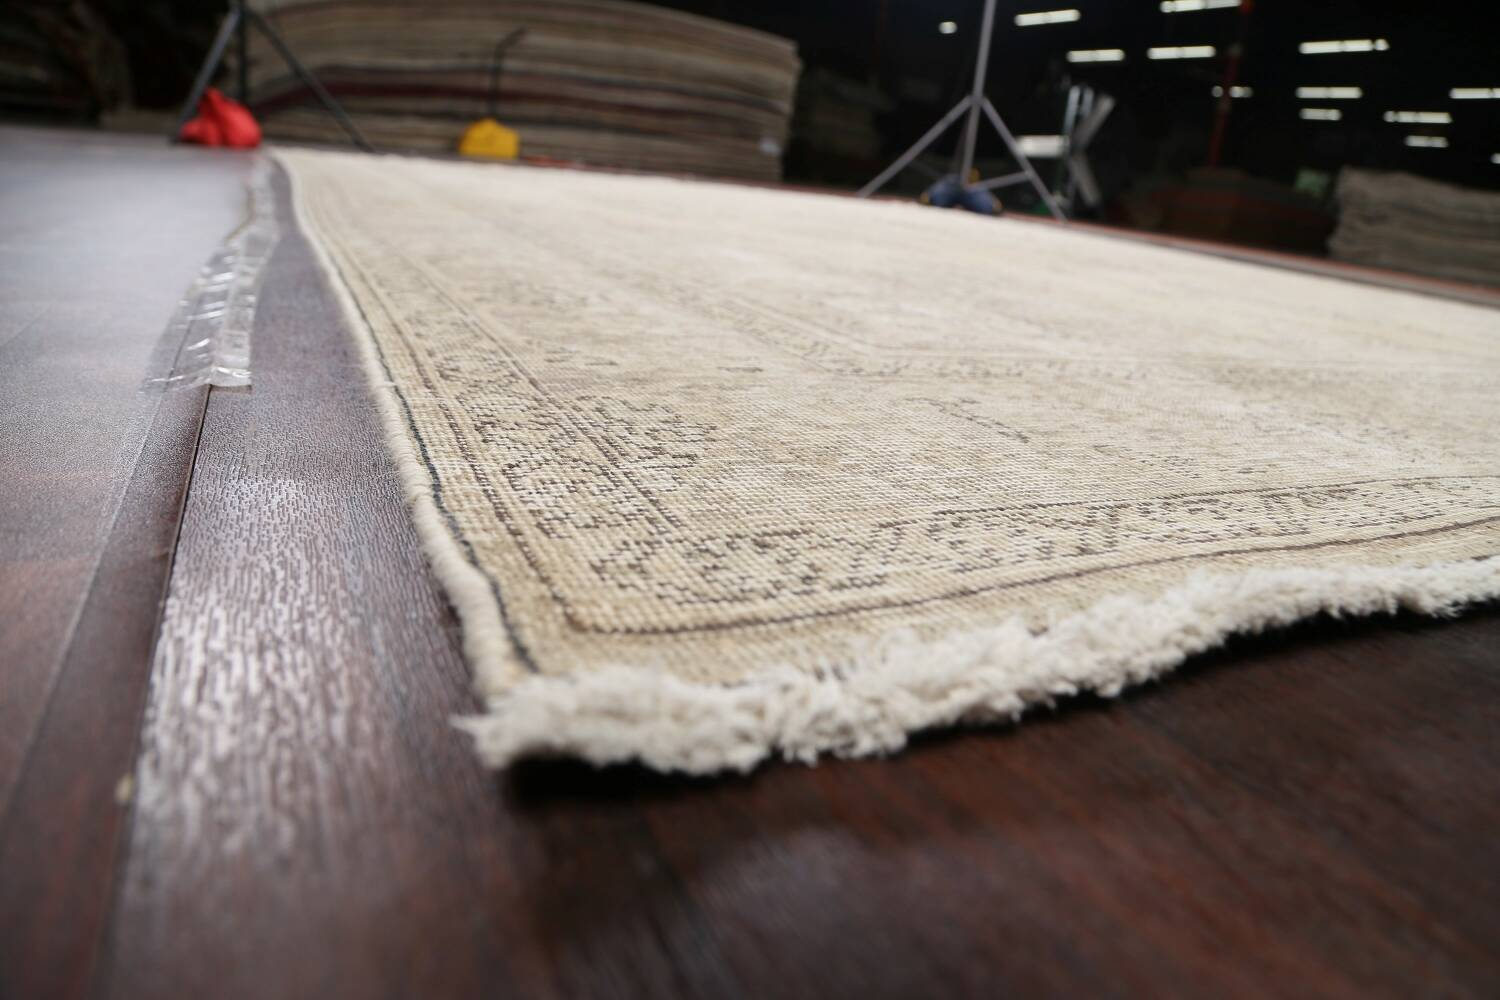 Muted Distressed Floral Tabriz Persian Area Rug 10x13 image 6